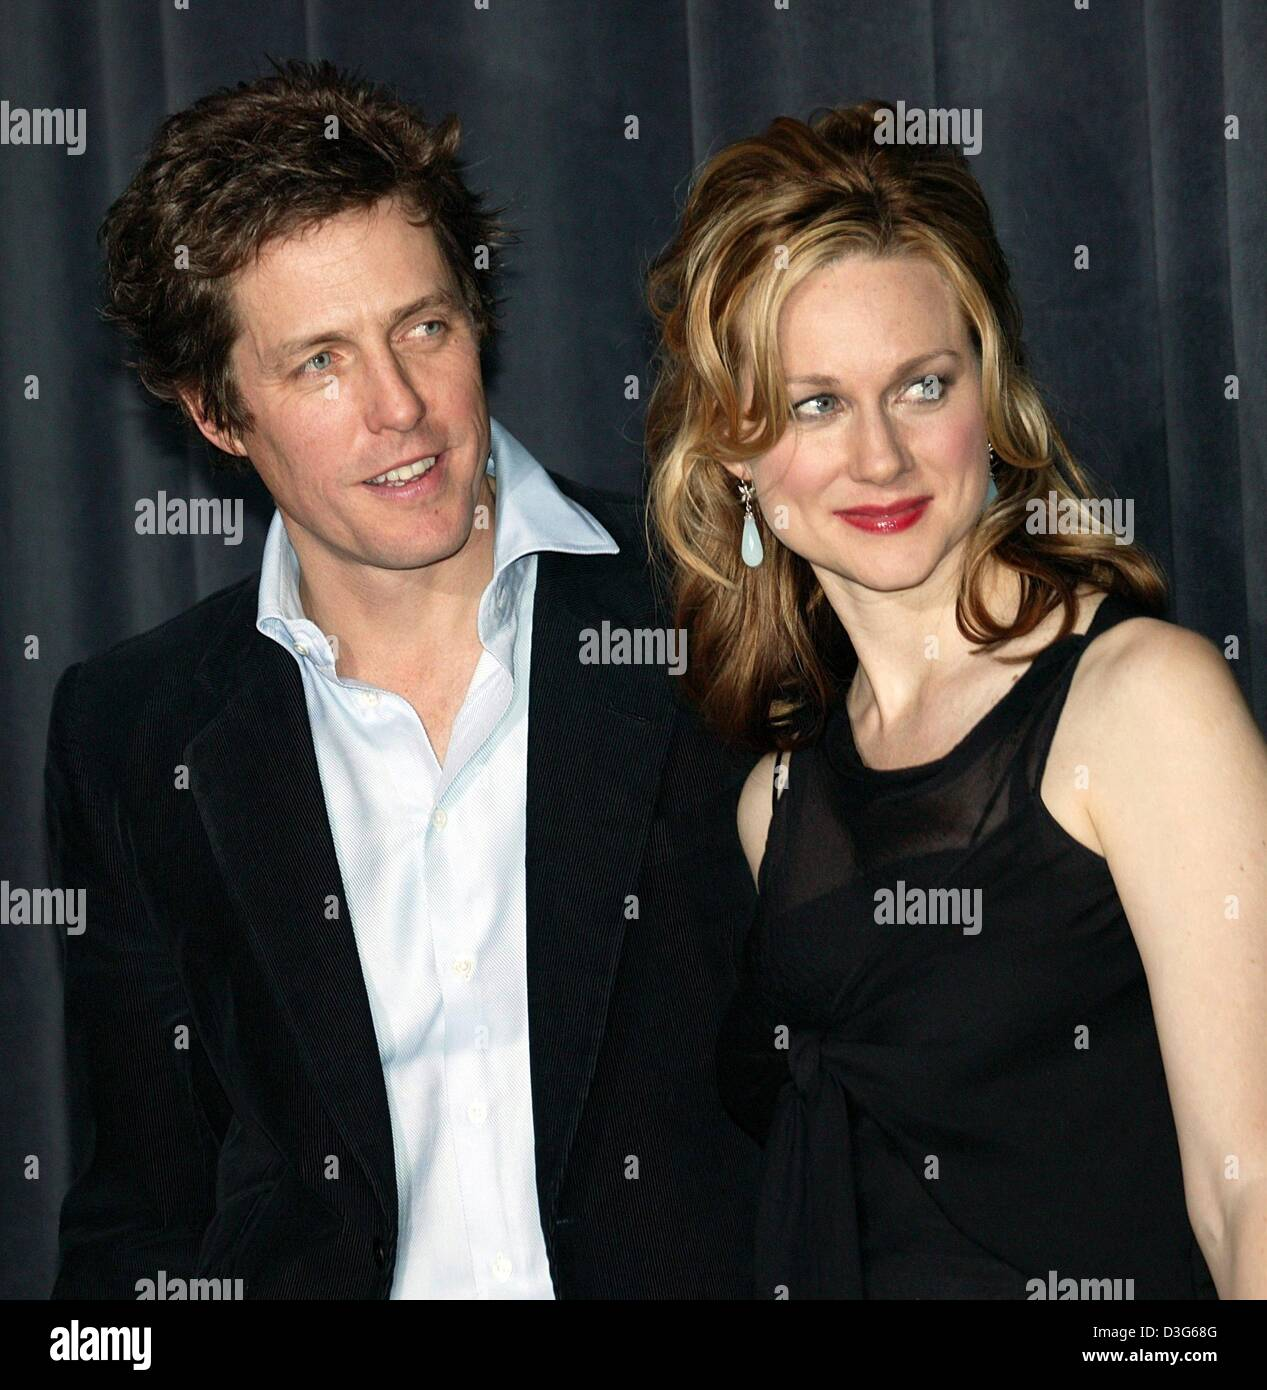 (dpa) - The British actors Hugh Grant and Laura Linney pose ahead of the German premiere of their film 'Love - Stock Image